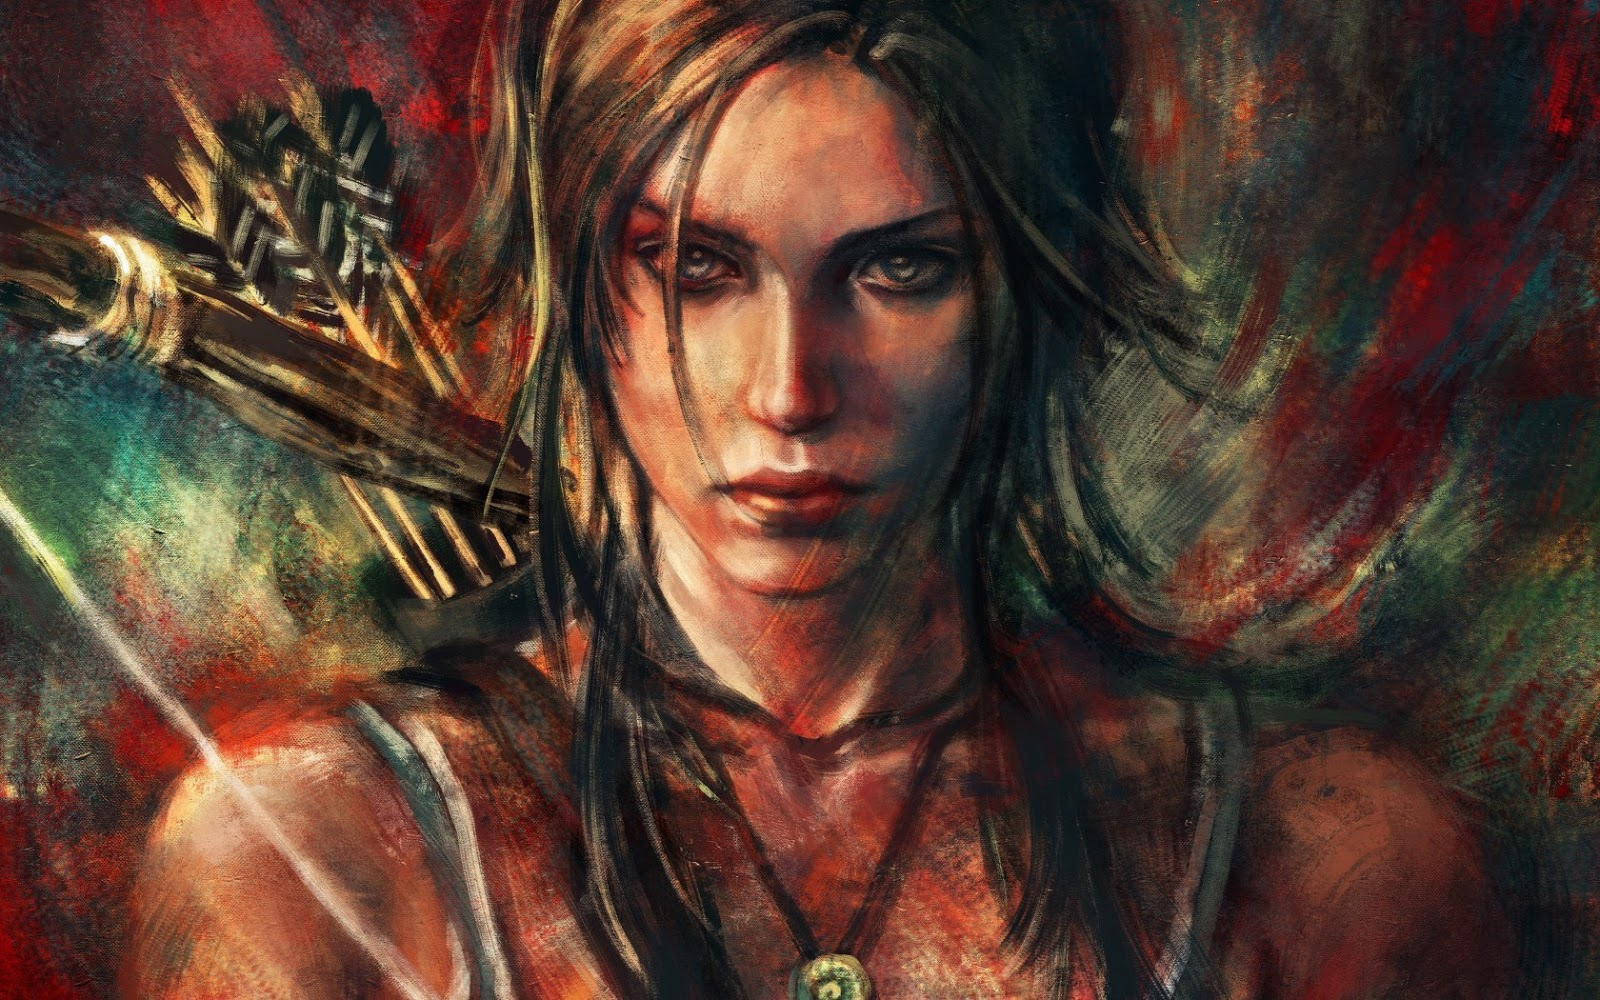 lara croft tomb raider artwork wallpapers - Tomb Raider Wallpapers on Art of TombRaider DeviantArt